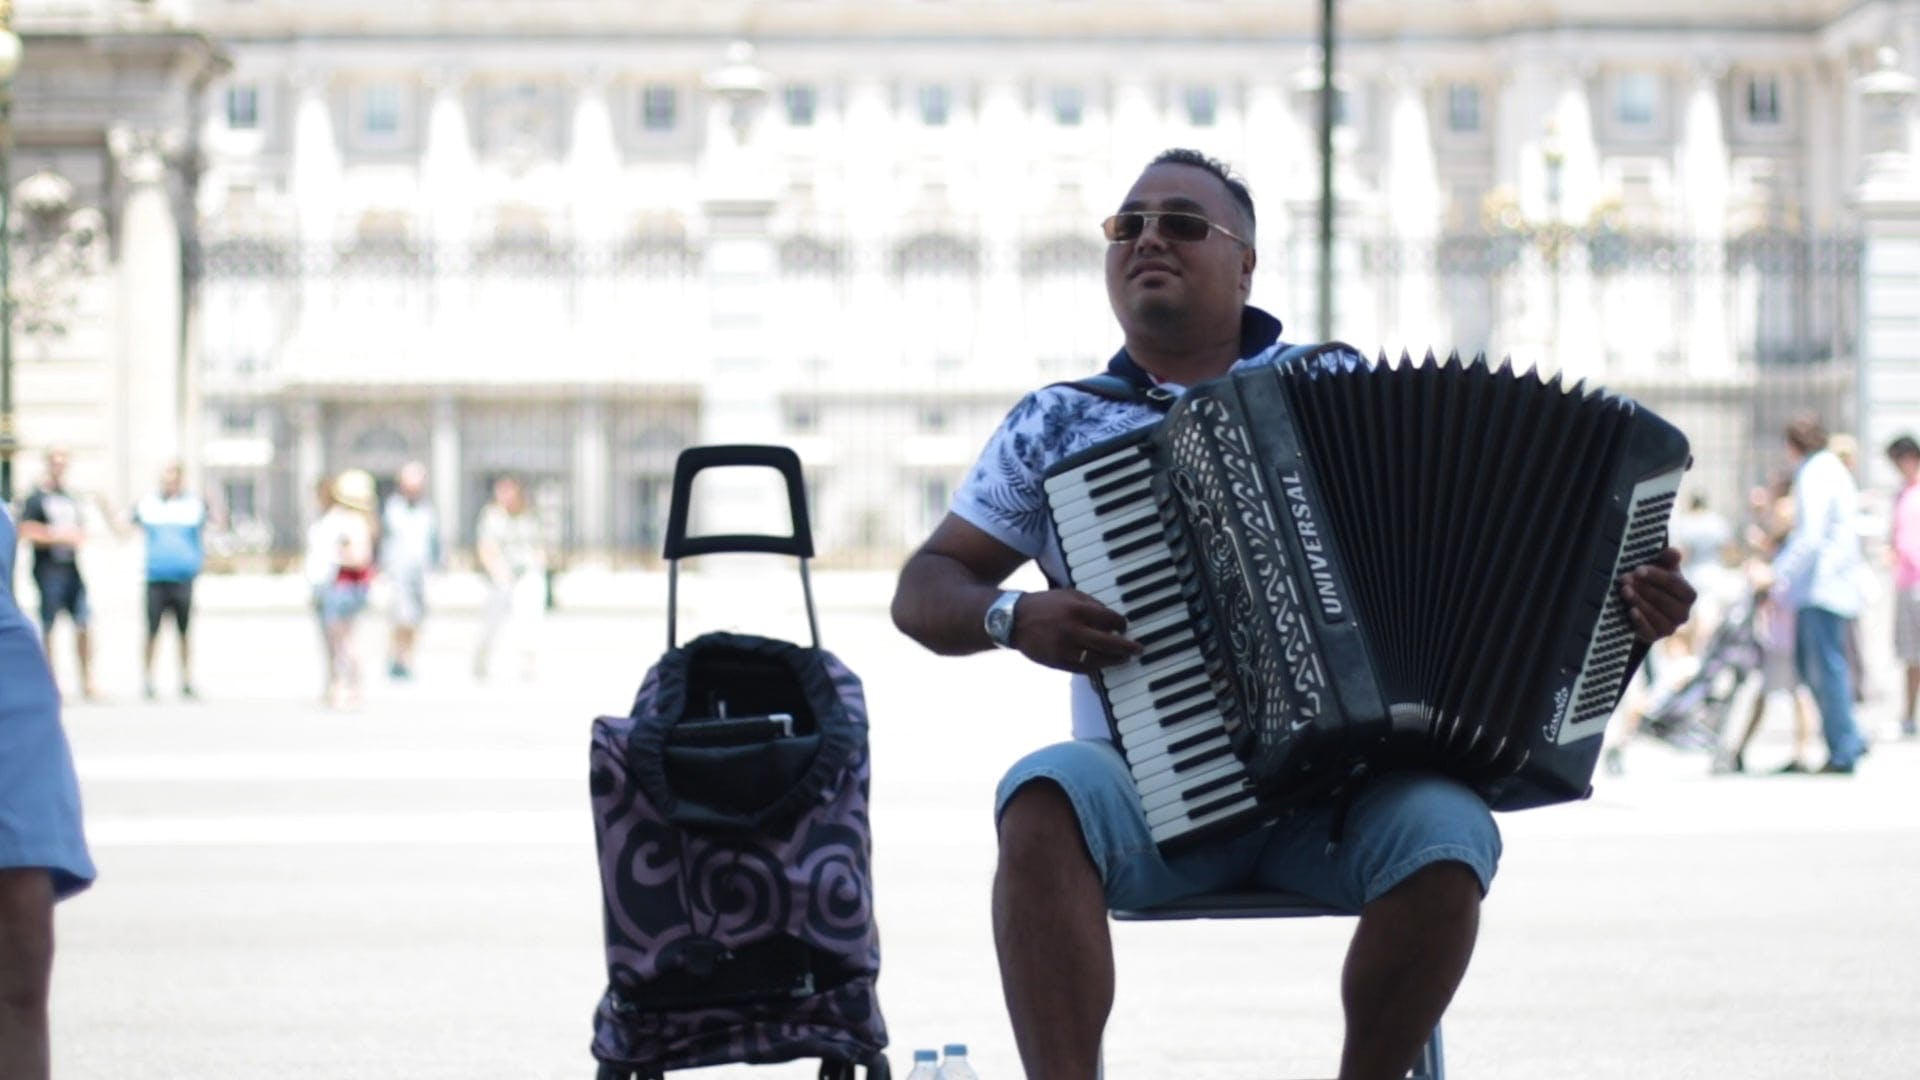 A Street Performer Playing An Accordion